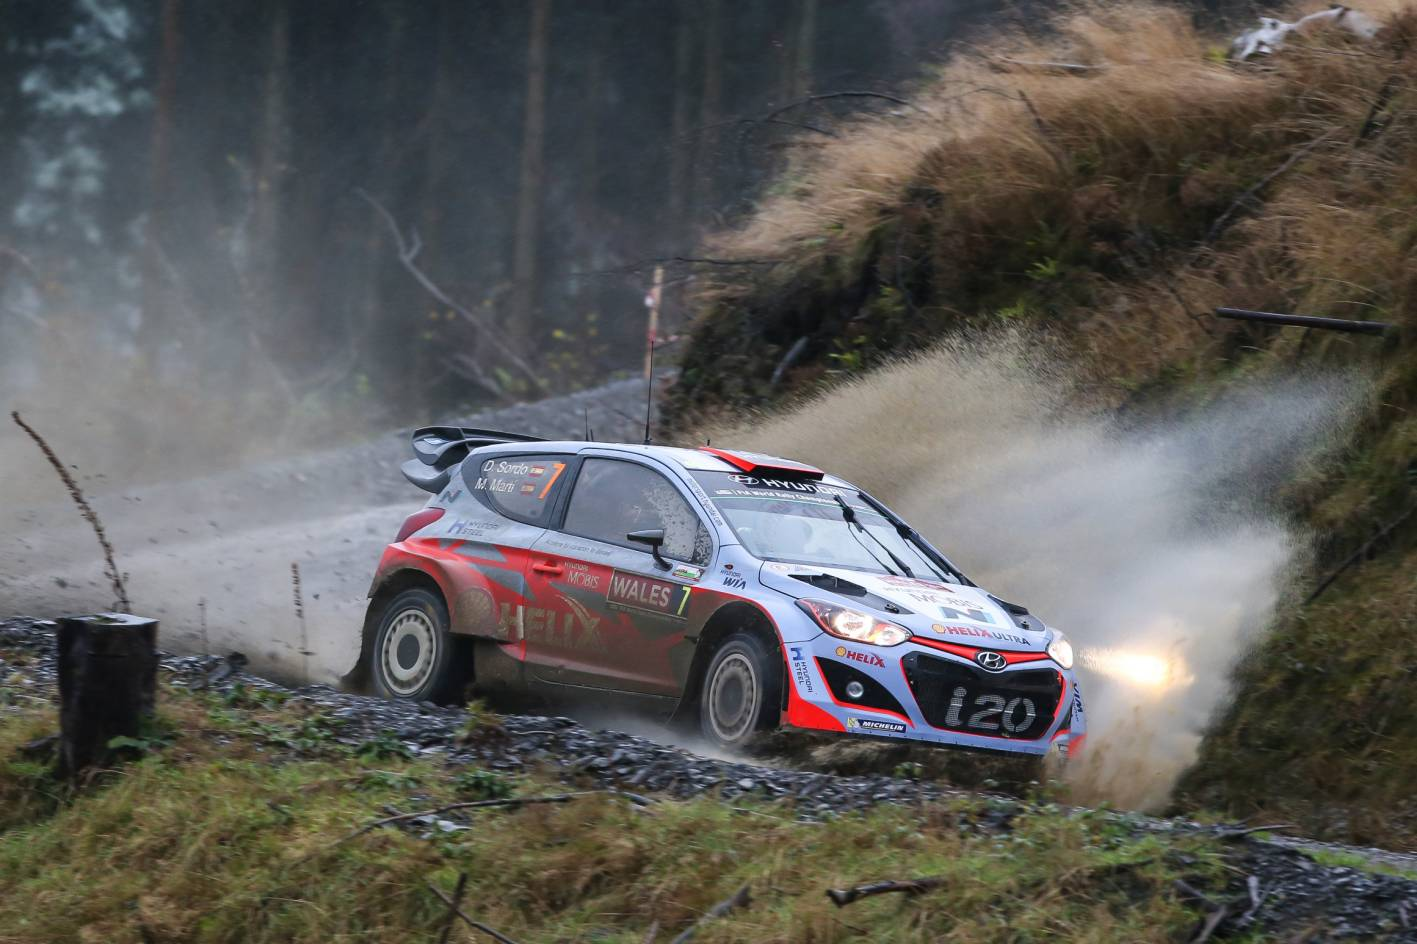 hyundai targeting podium in wales rally gb round of wrc. Black Bedroom Furniture Sets. Home Design Ideas